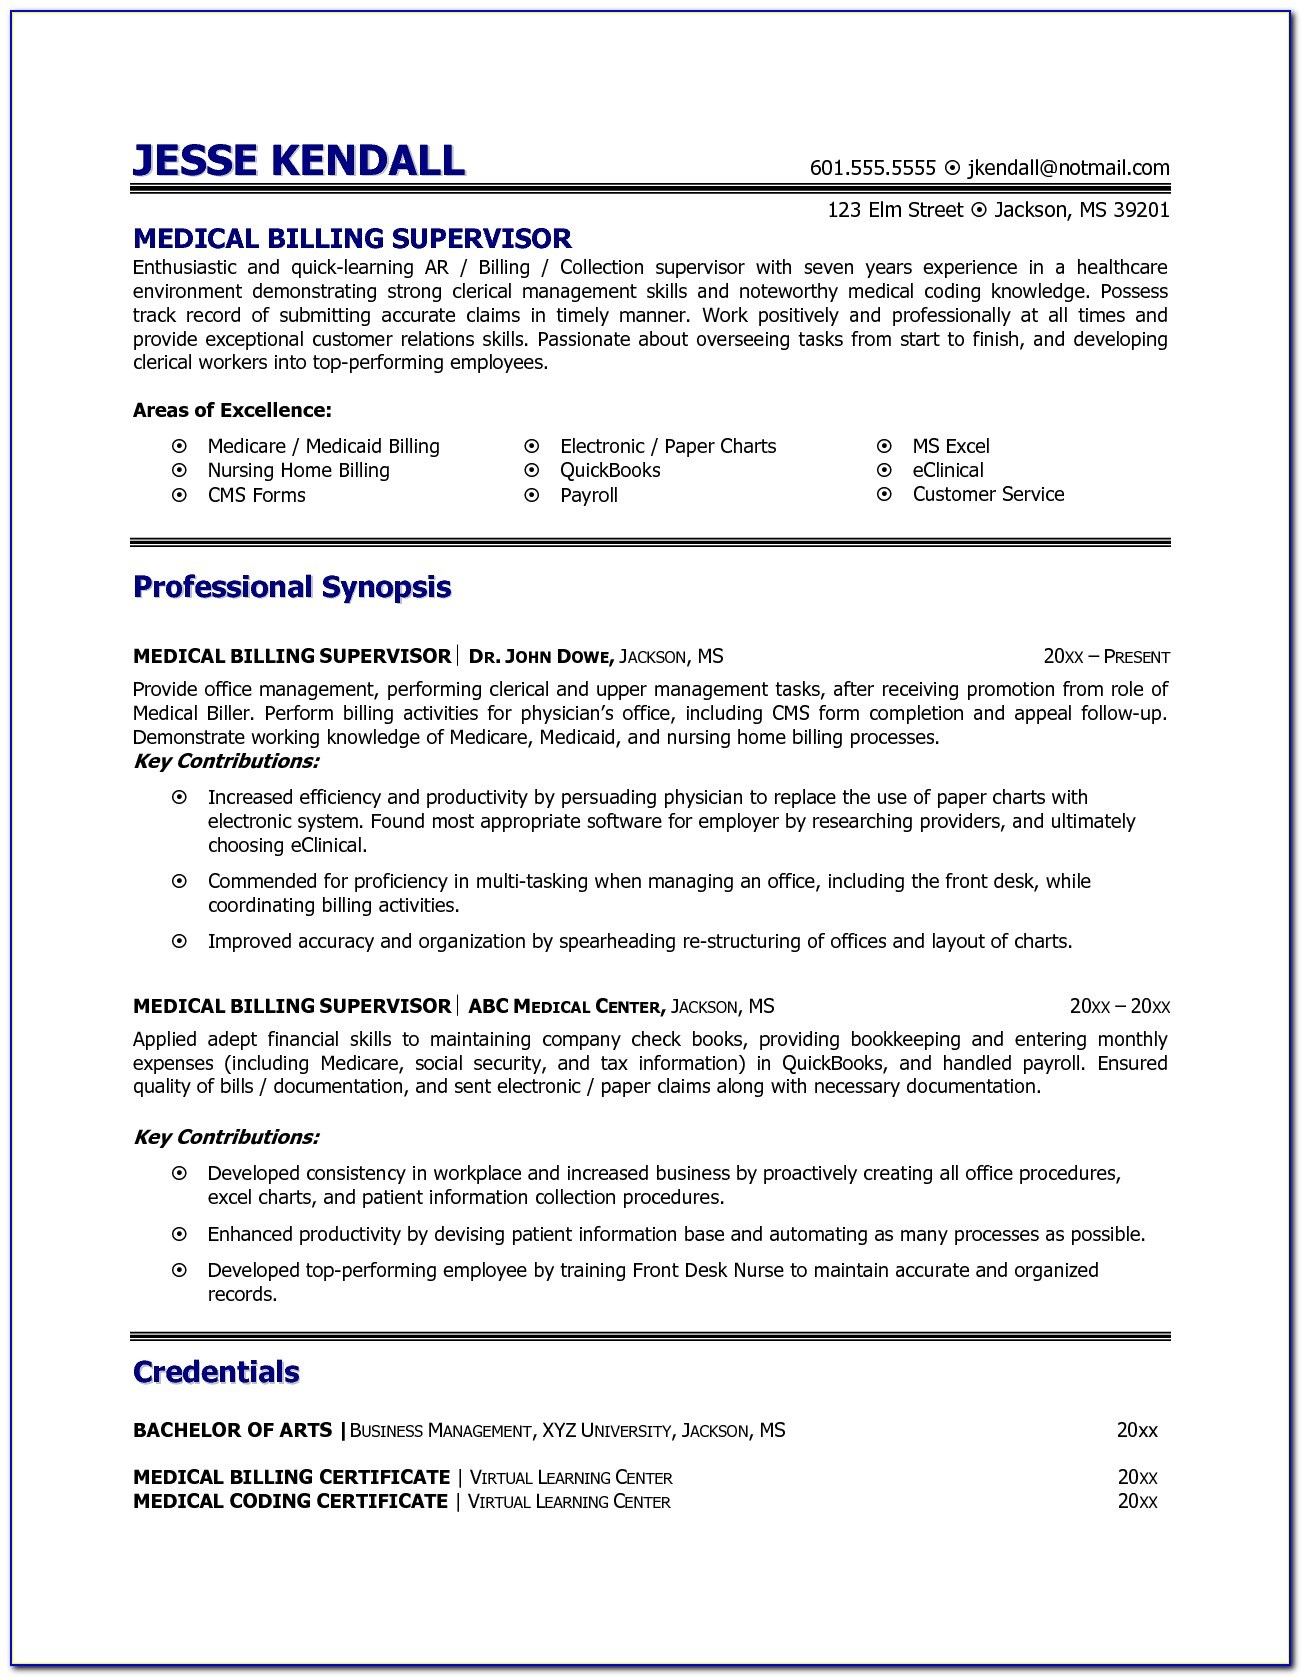 medical billing and coding resume skills vincegray2014 sample for shipping clerk Resume Sample Resume For Medical Billing And Coding